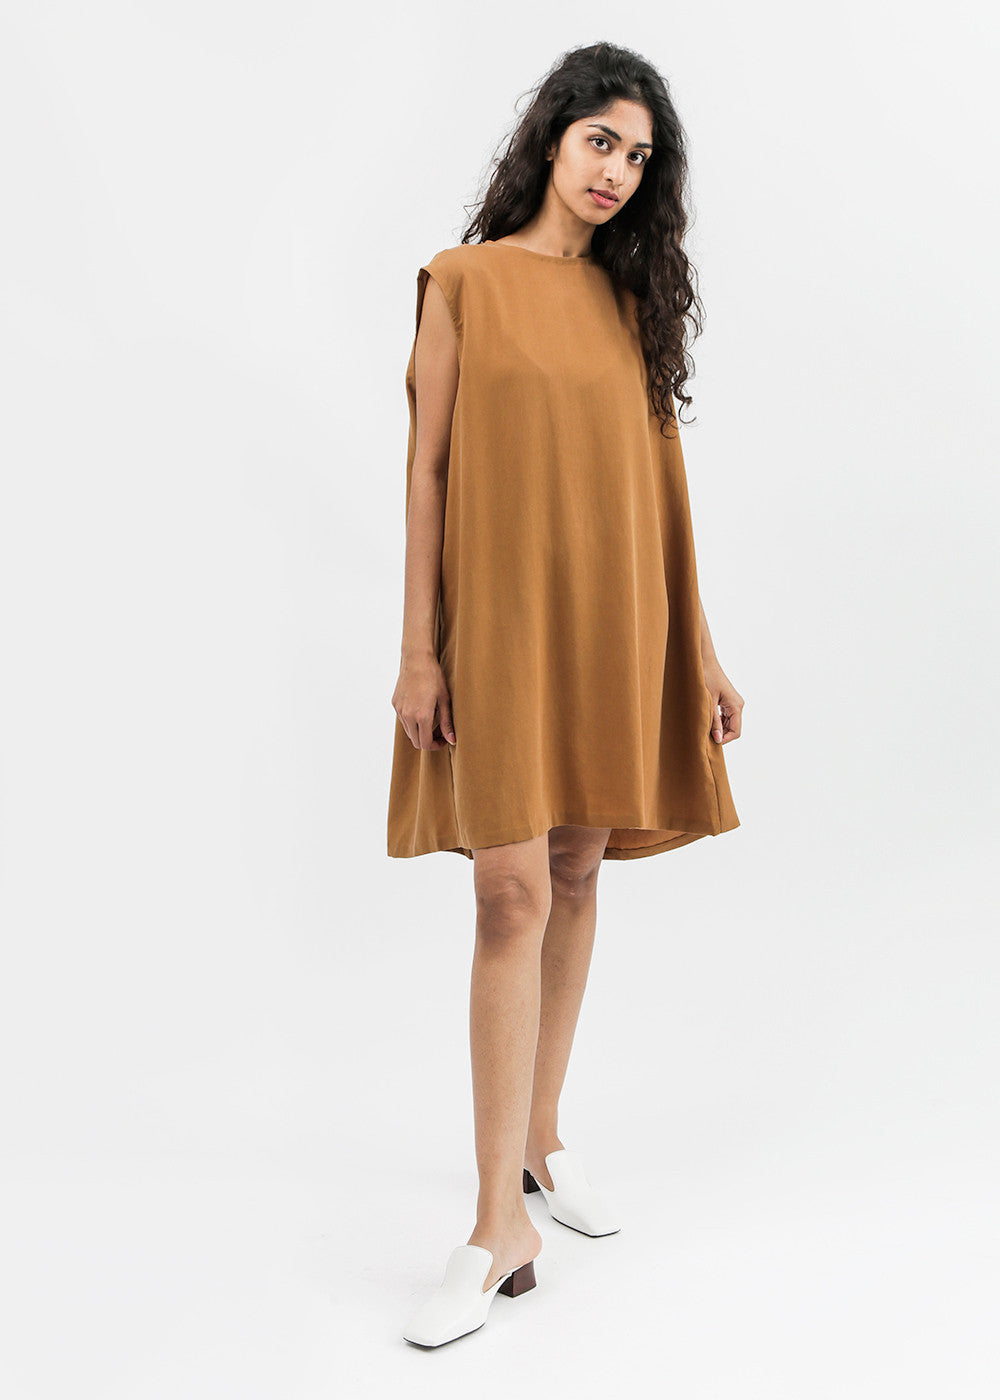 Kaarem Slab Back Pleat Sleeveless Dress — Shop sustainable fashion and slow fashion at New Classics Studios